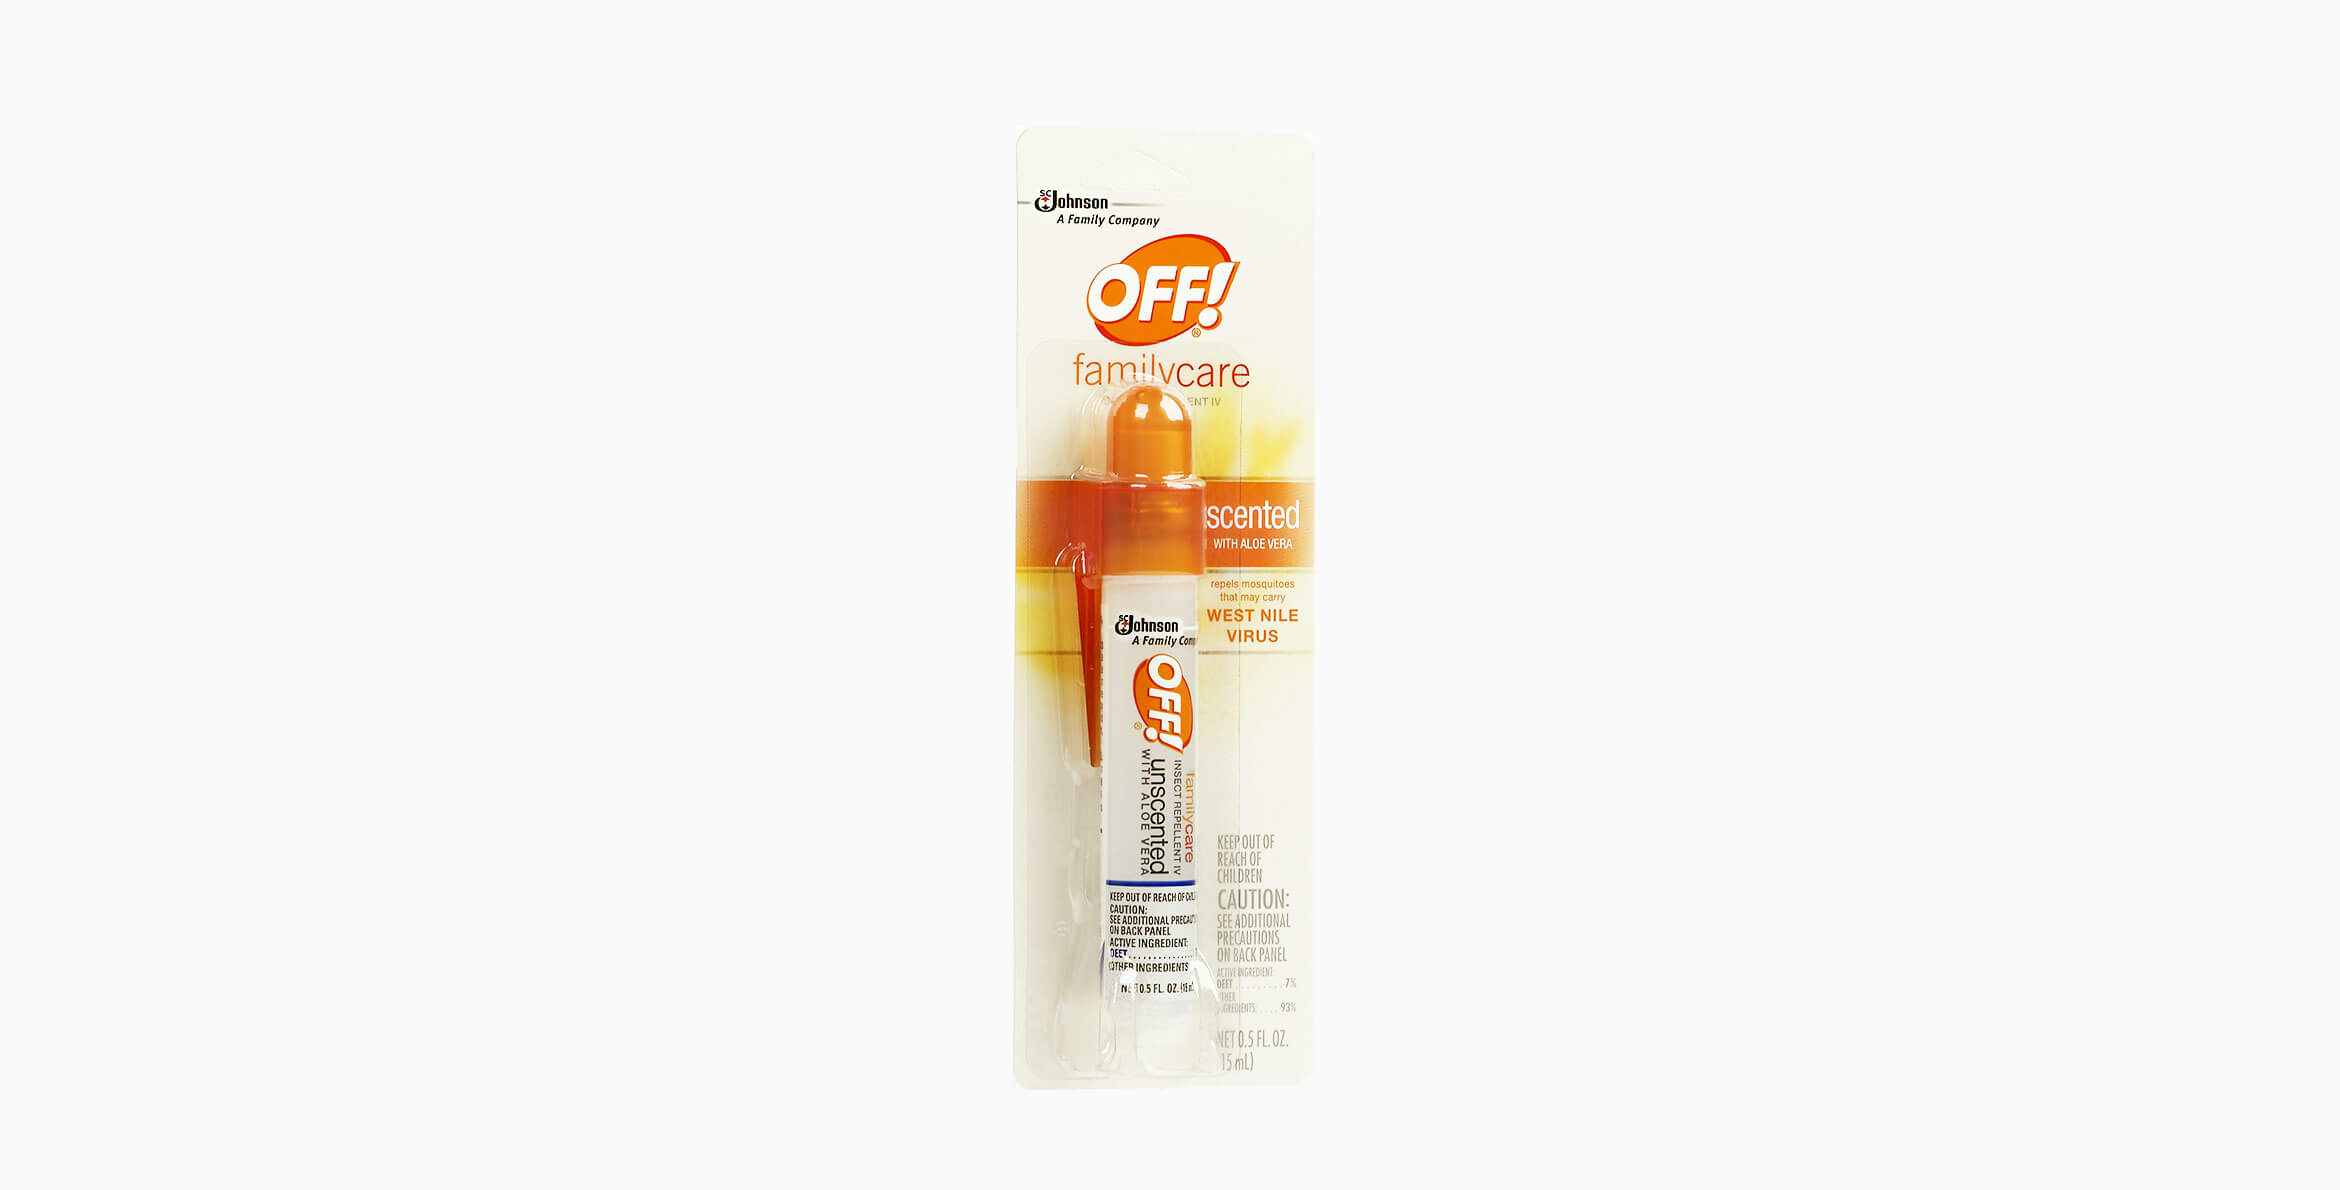 OFF!® FamilyCare Insect Repellent IV Mini Pump Spray